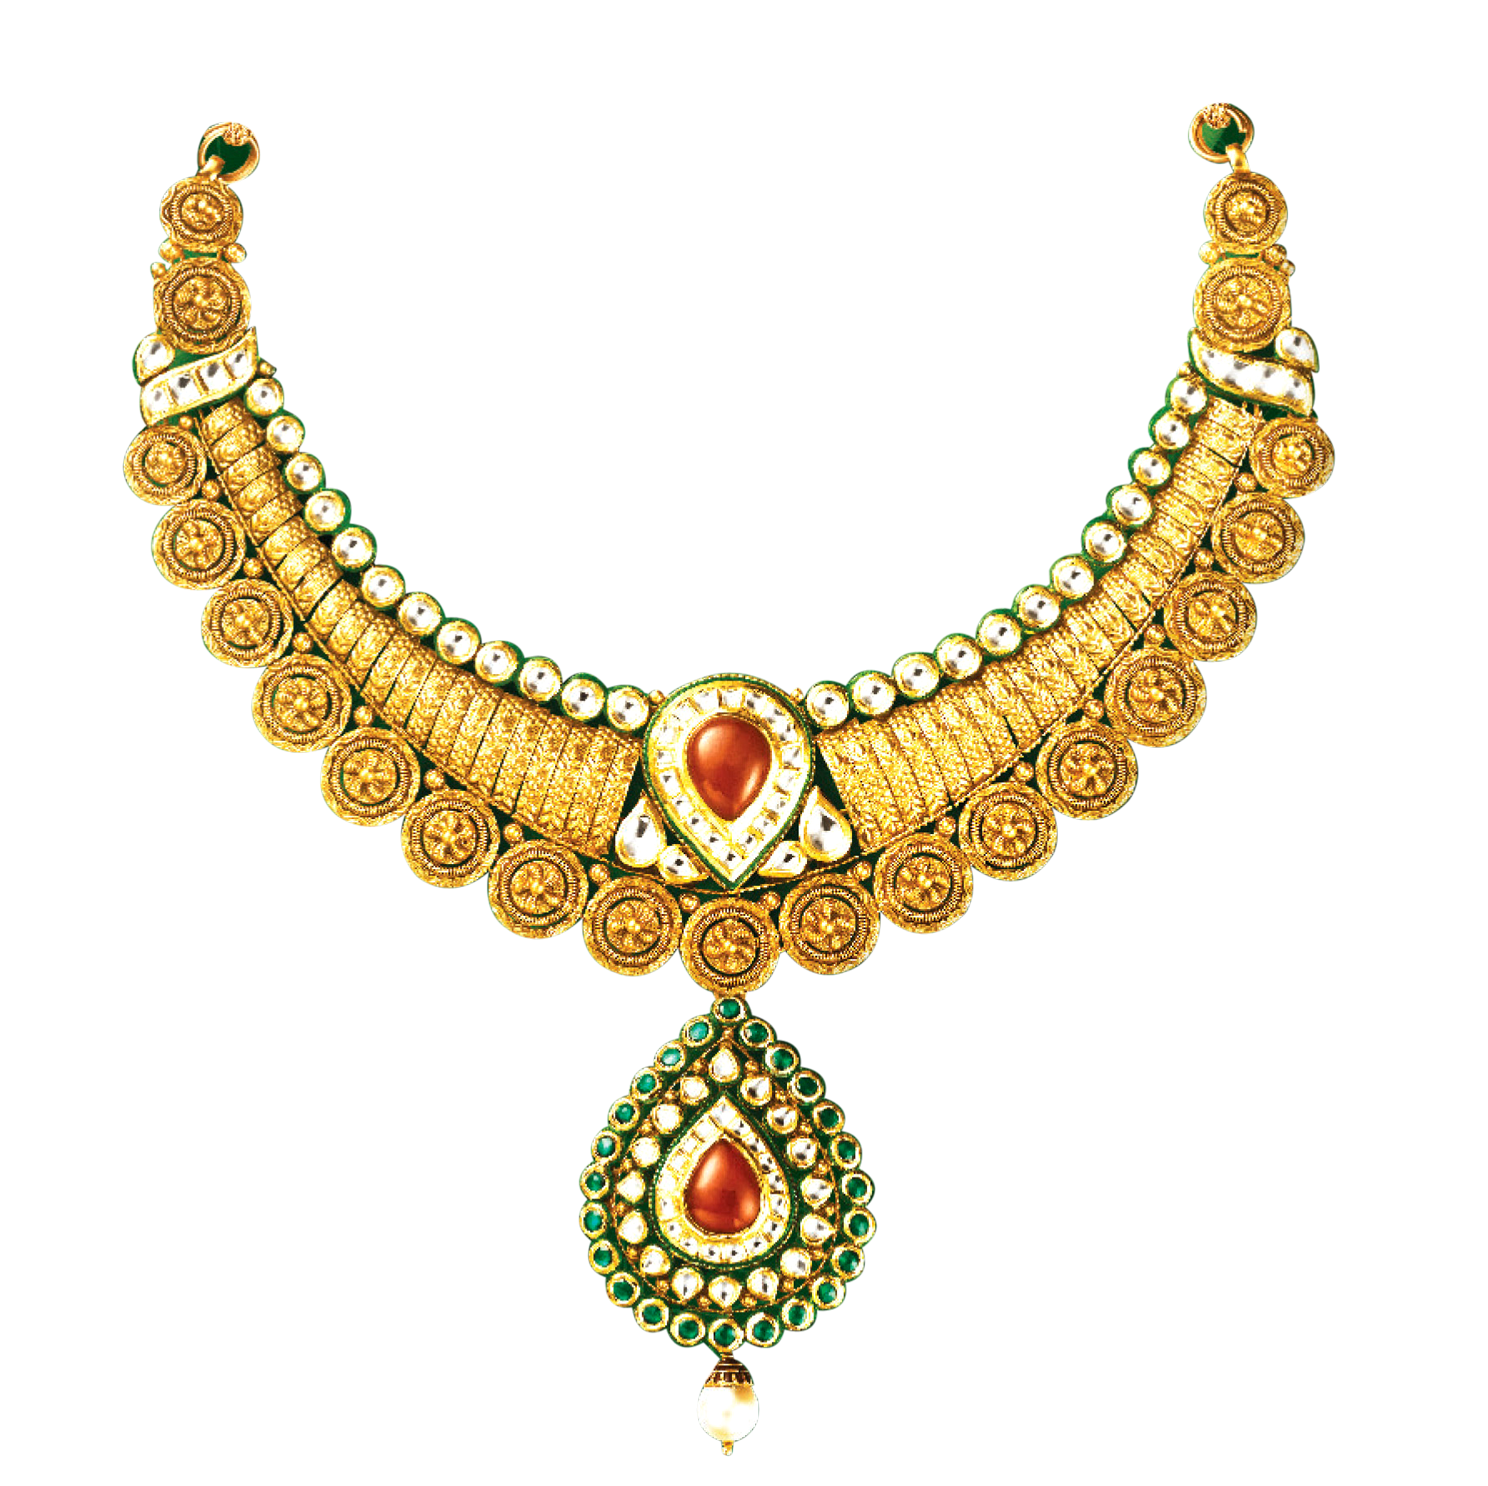 jewellery, gold ornaments png images download #13220